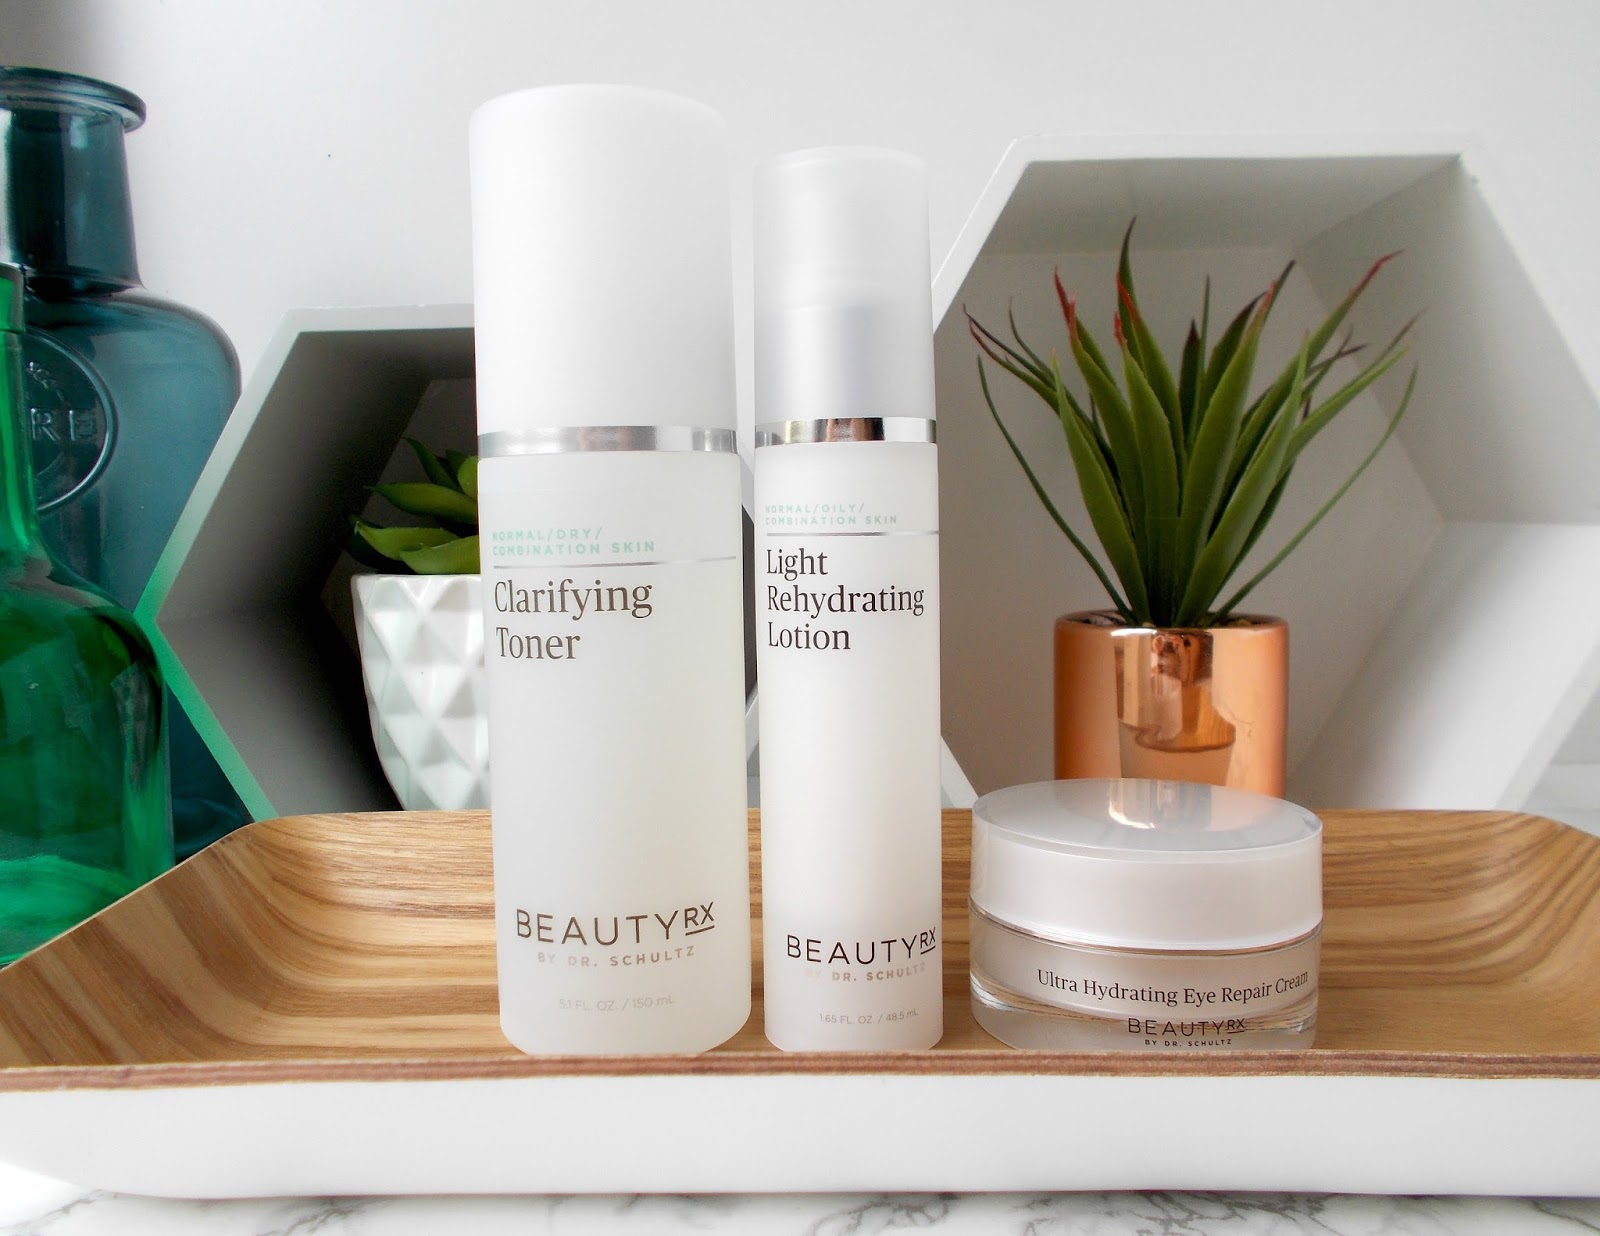 BeautyRX by Dr. Schultz skincare review